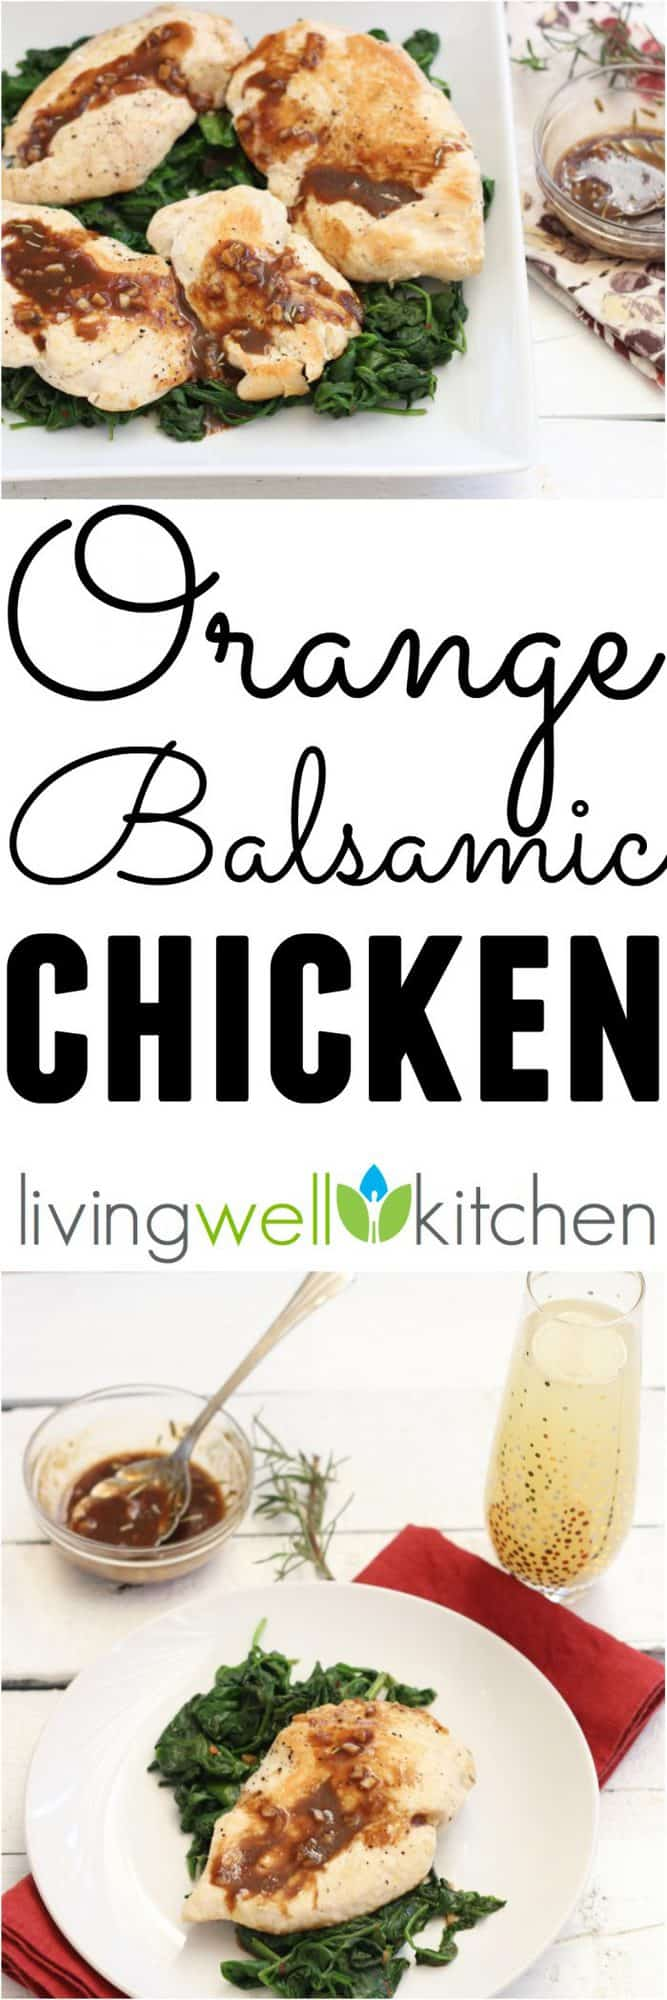 Liven up your chicken dish with this simple, one potOrange Balsamic Chicken with Spinach from @memeinge filled with nutrients that's sweet, tangy and delicious. Gluten & dairy free